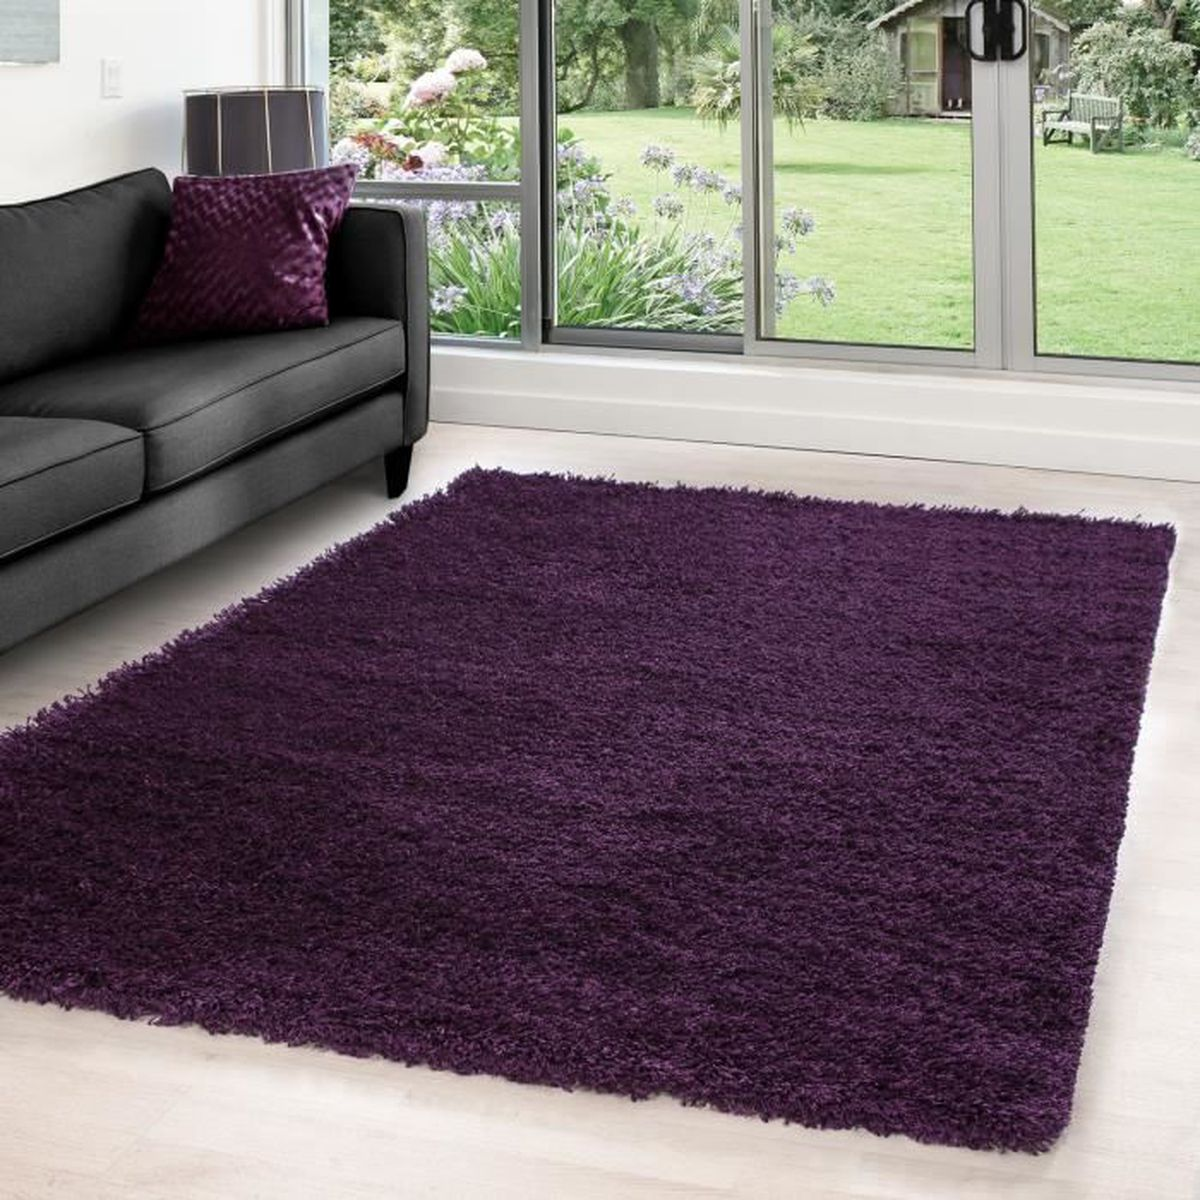 hirsute tapis moquette du salon shaggy avec une hauteur de 5 cm pile monochrome 4444 pourpre. Black Bedroom Furniture Sets. Home Design Ideas